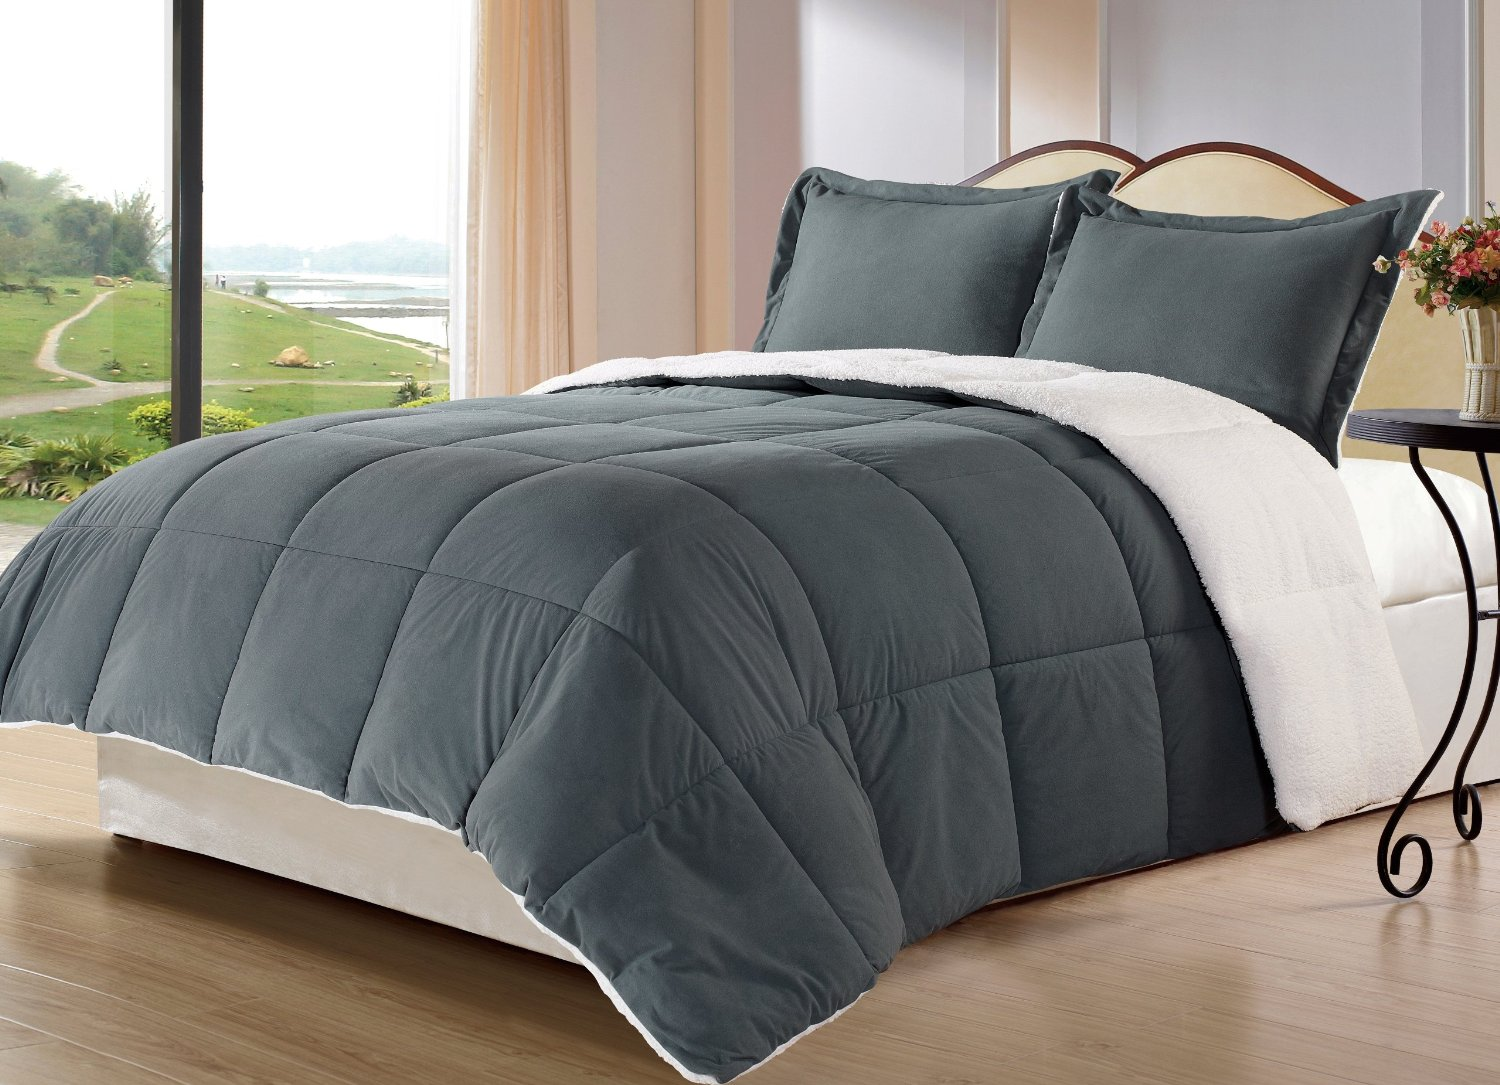 king comforter good down grey lustwithalaugh oversized design